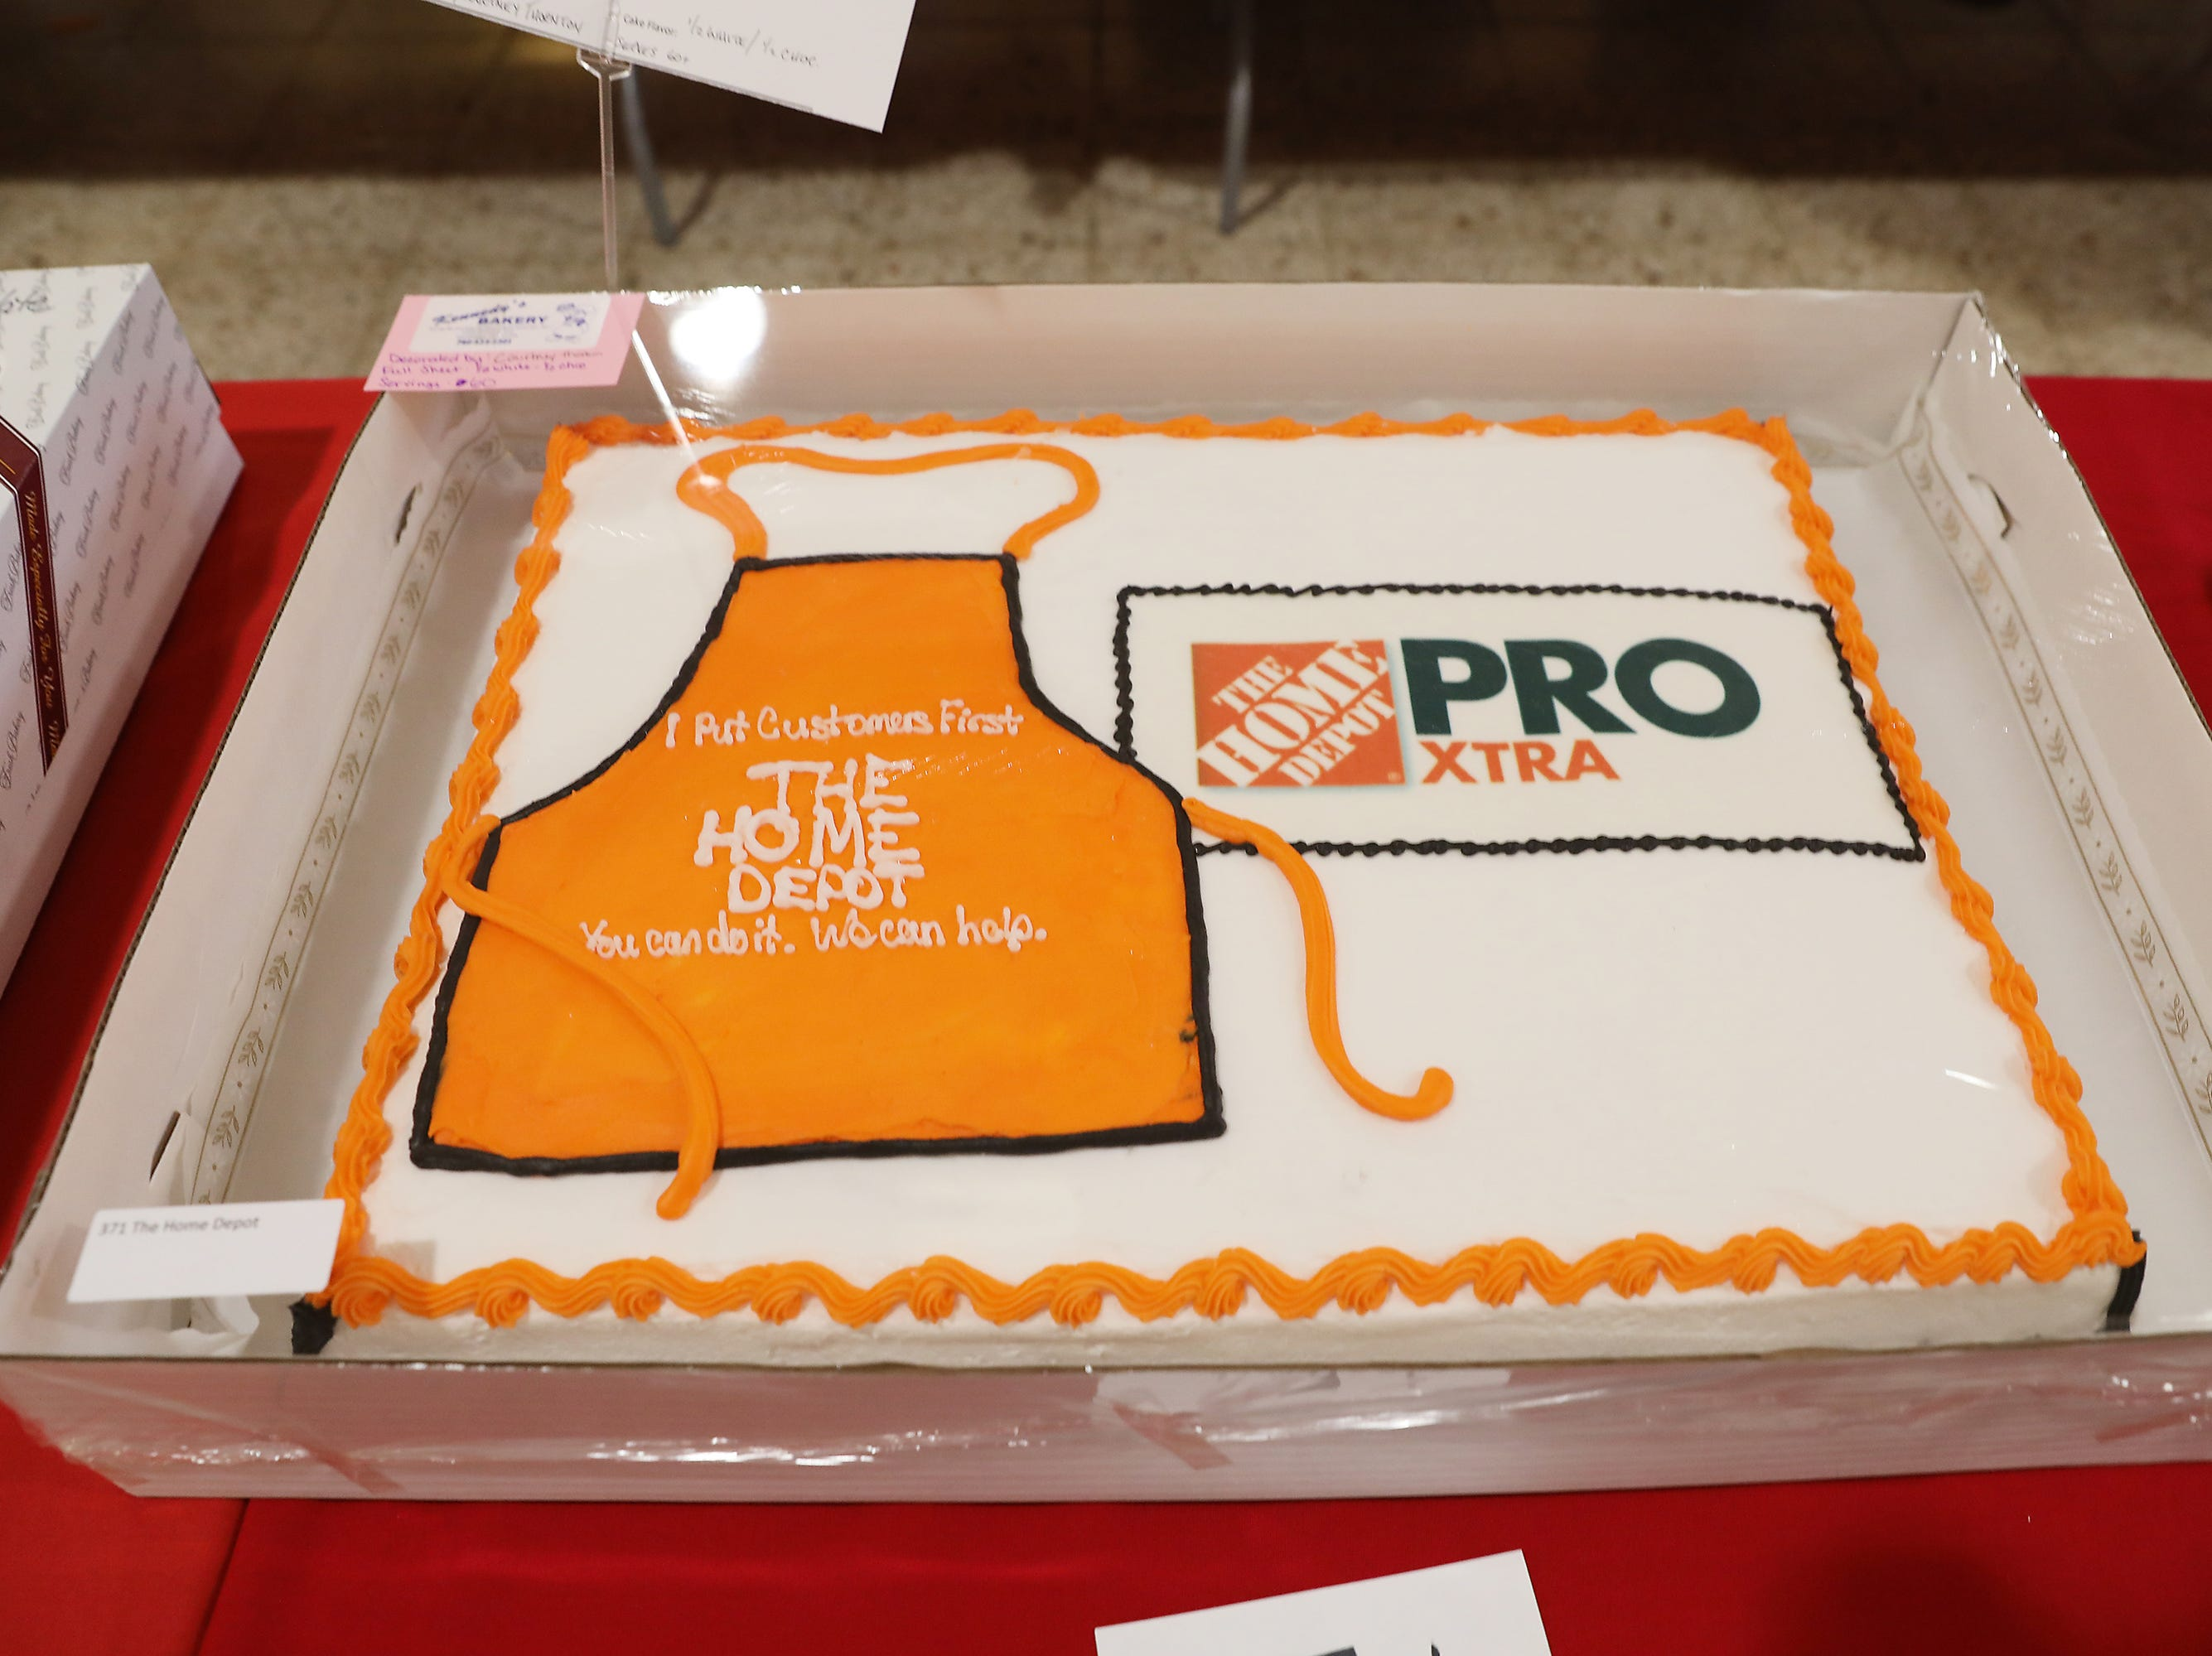 4 P.M. Friday cake 371 The Home Depot - grill, accessories; $250